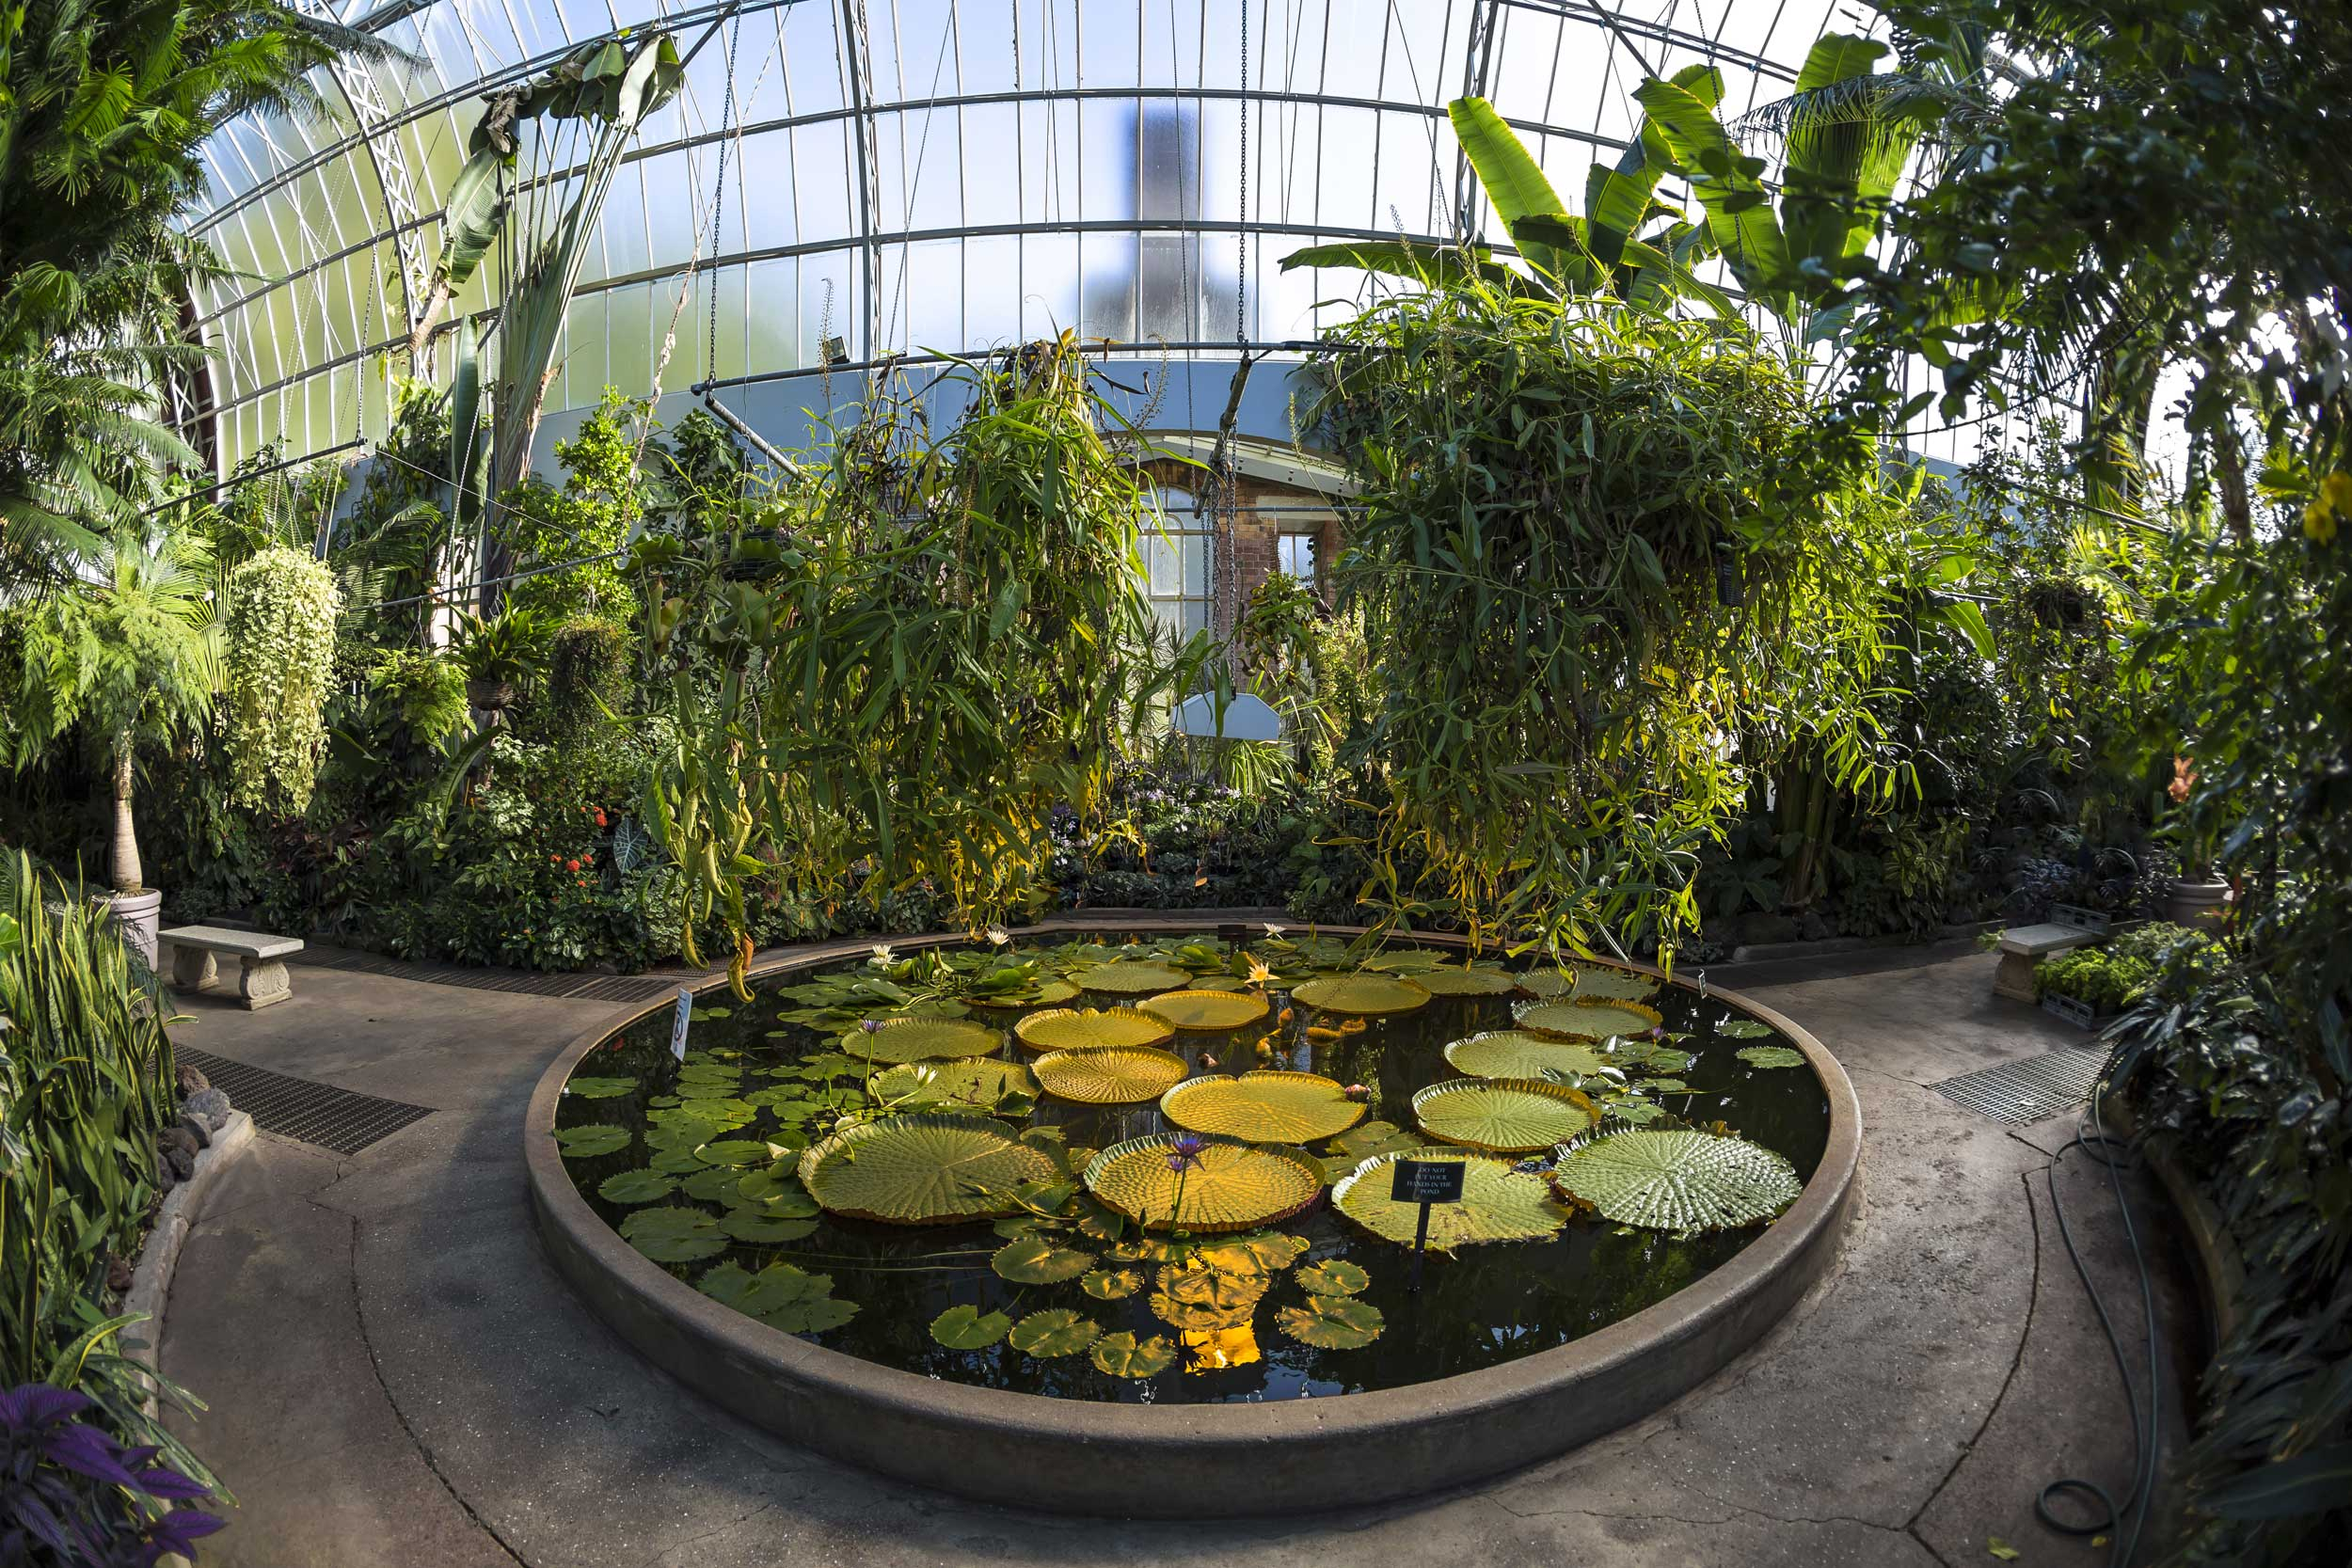 Waterlilies in a circular small pond with other tropical plants in a glasshouse, Auckland